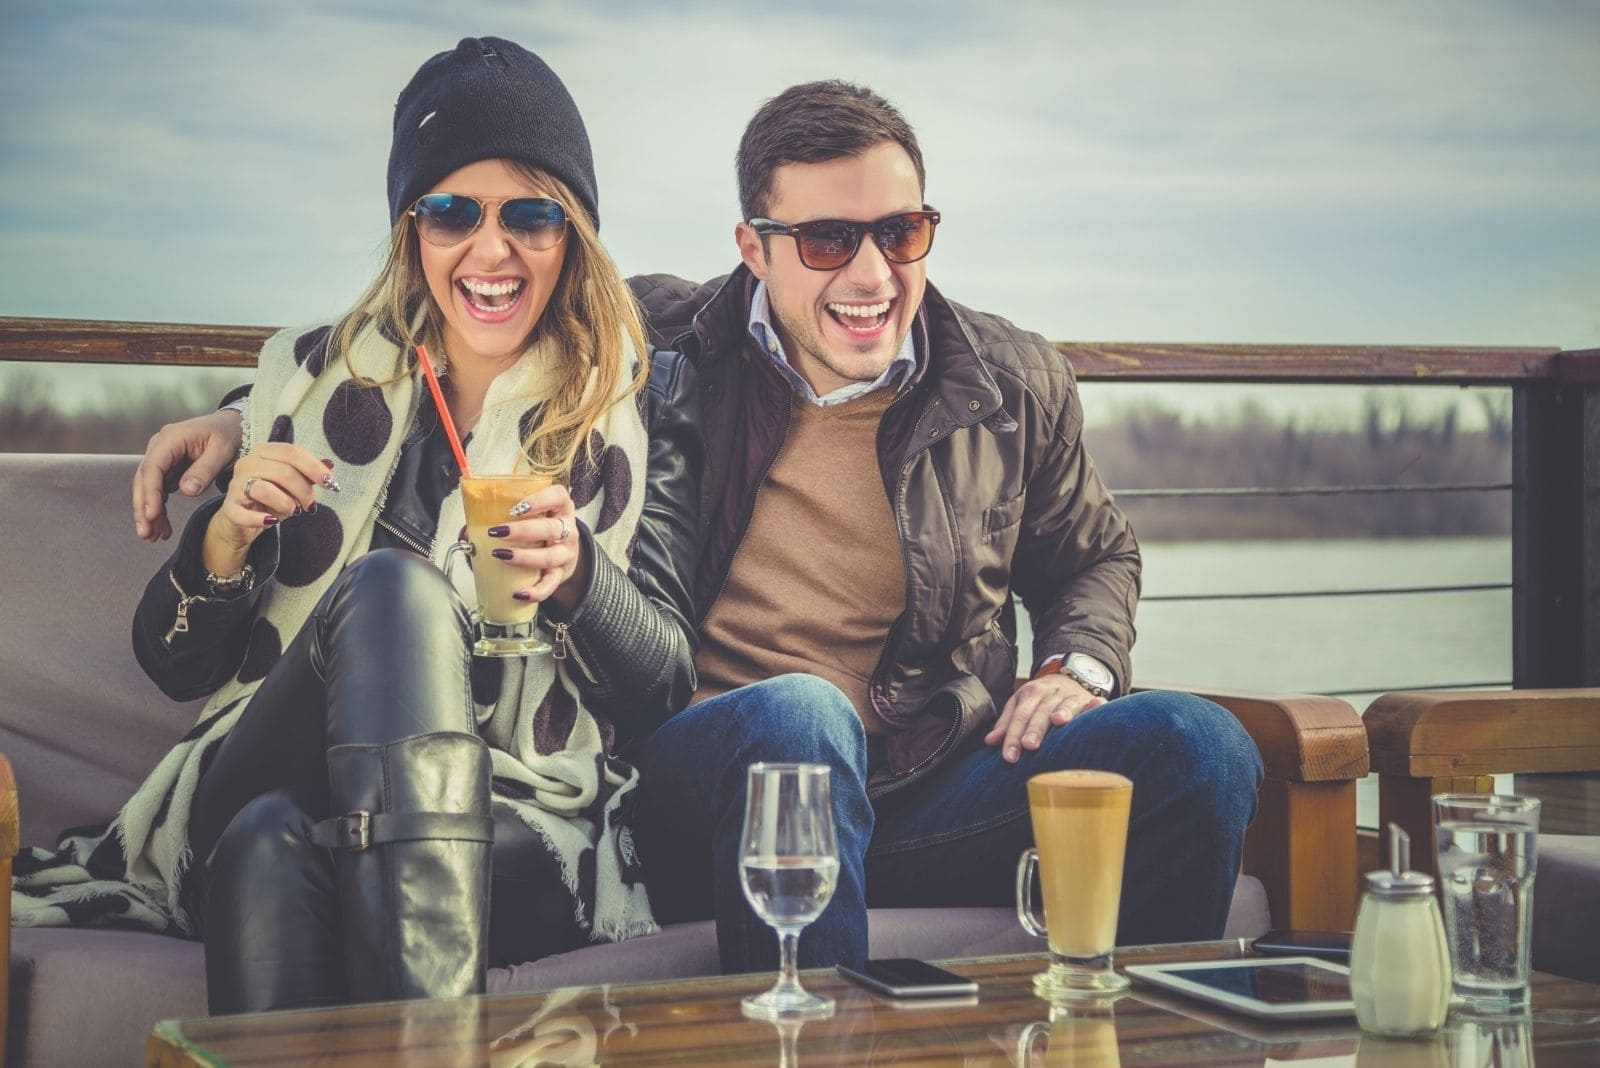 man and woman laughing wearing winter clothes sitting near the body of water and drinking beverage